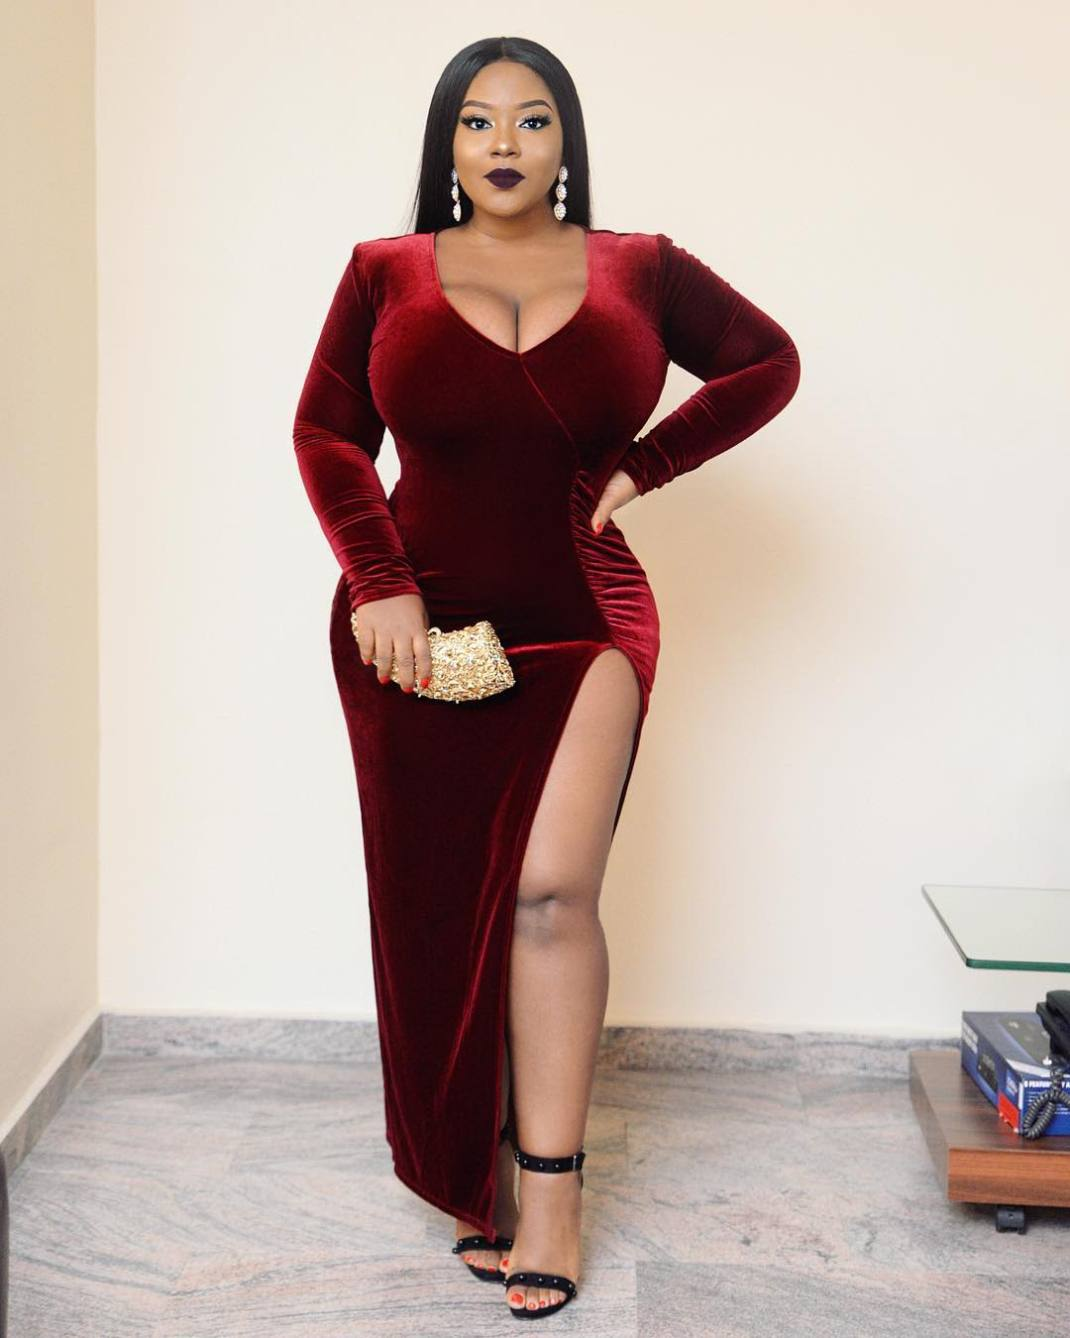 25035702 2045942188953337 2451794407477739520 n - This Curvy Influencer Will Show You How To Look Stylish If You Are Plus Size